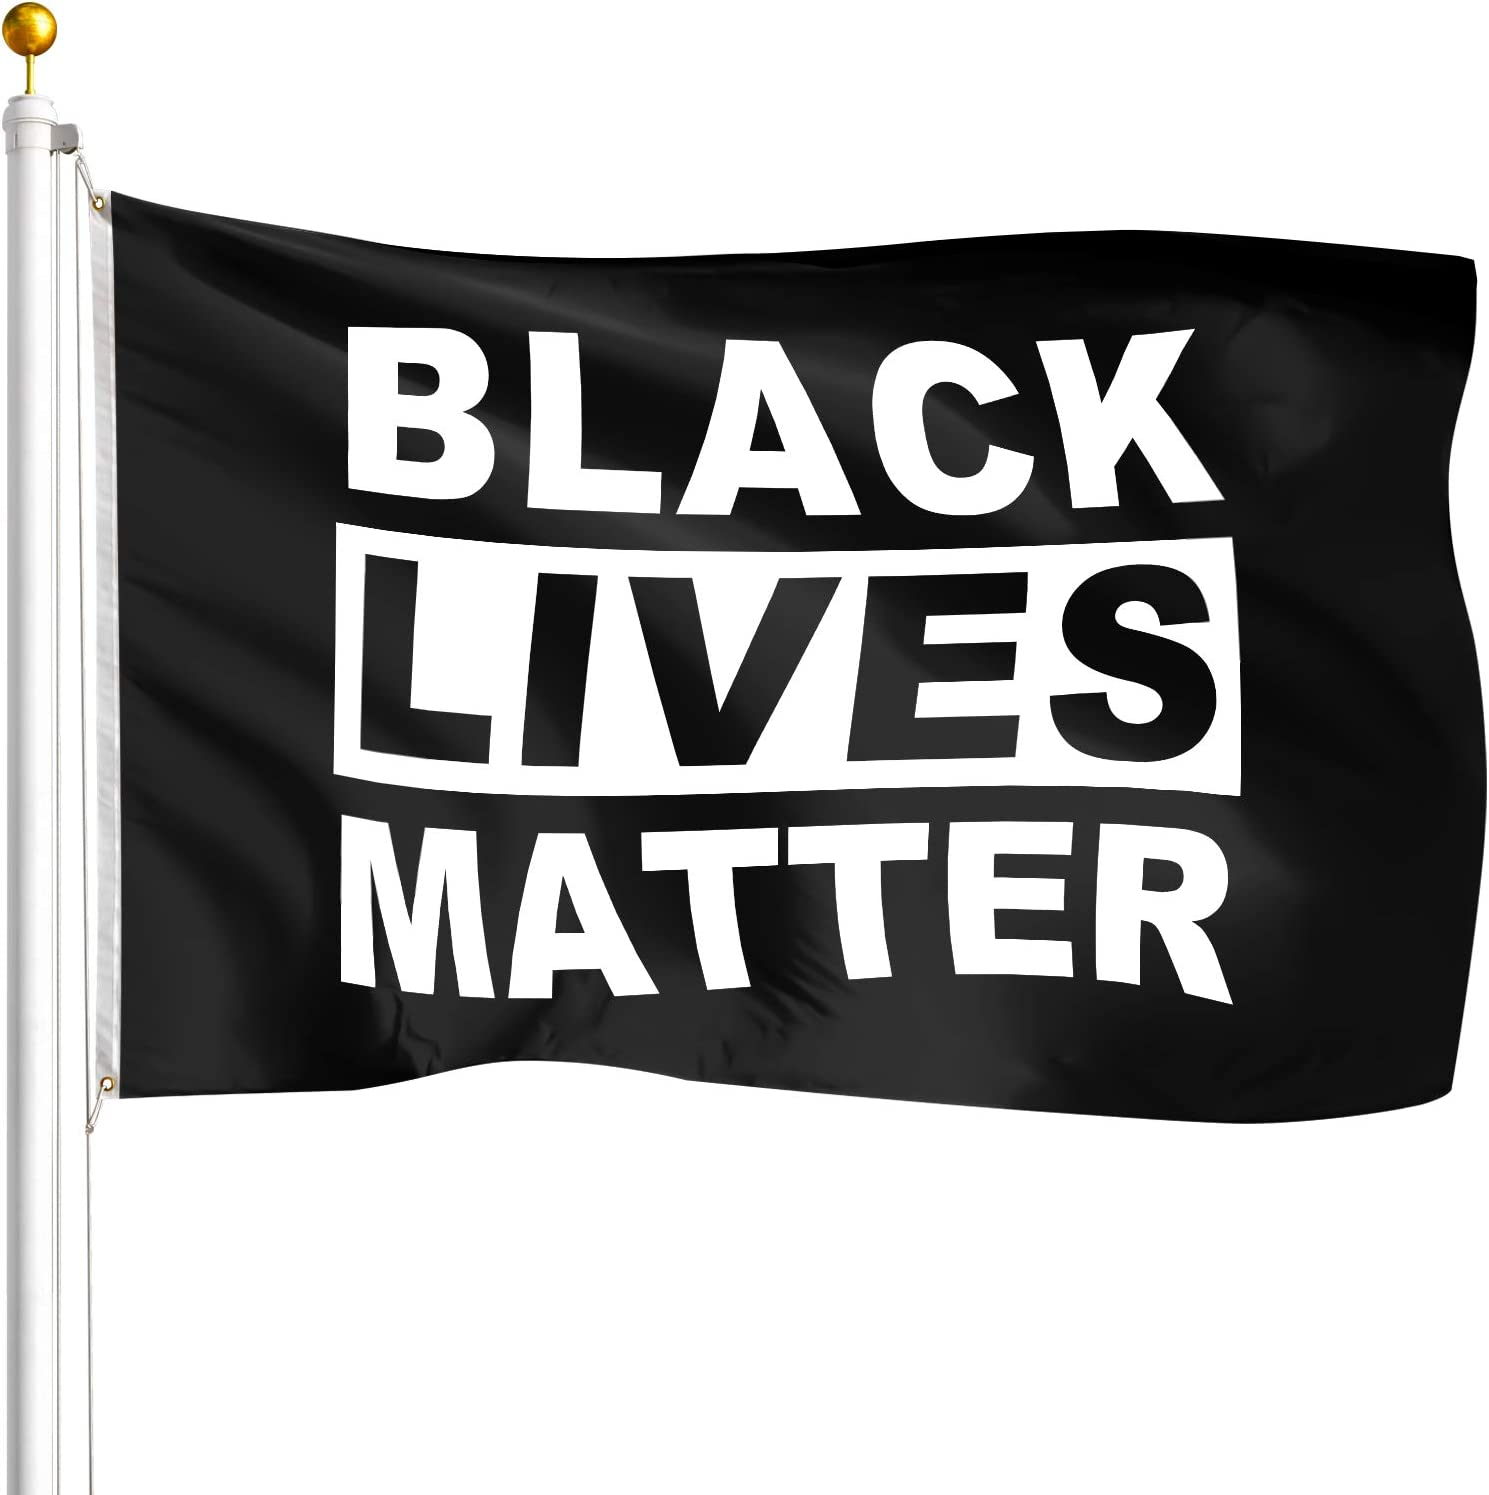 Amazon.com : Hamowtux 【FBA in Stock】 Black Lives Matter Flag BLM Flag with  Brass Grommets, 3'x5' Garden Flag Banner Wall Flag for Indoor Outdoor  Democrats I Can't Breathe George Floyd BLM Justice